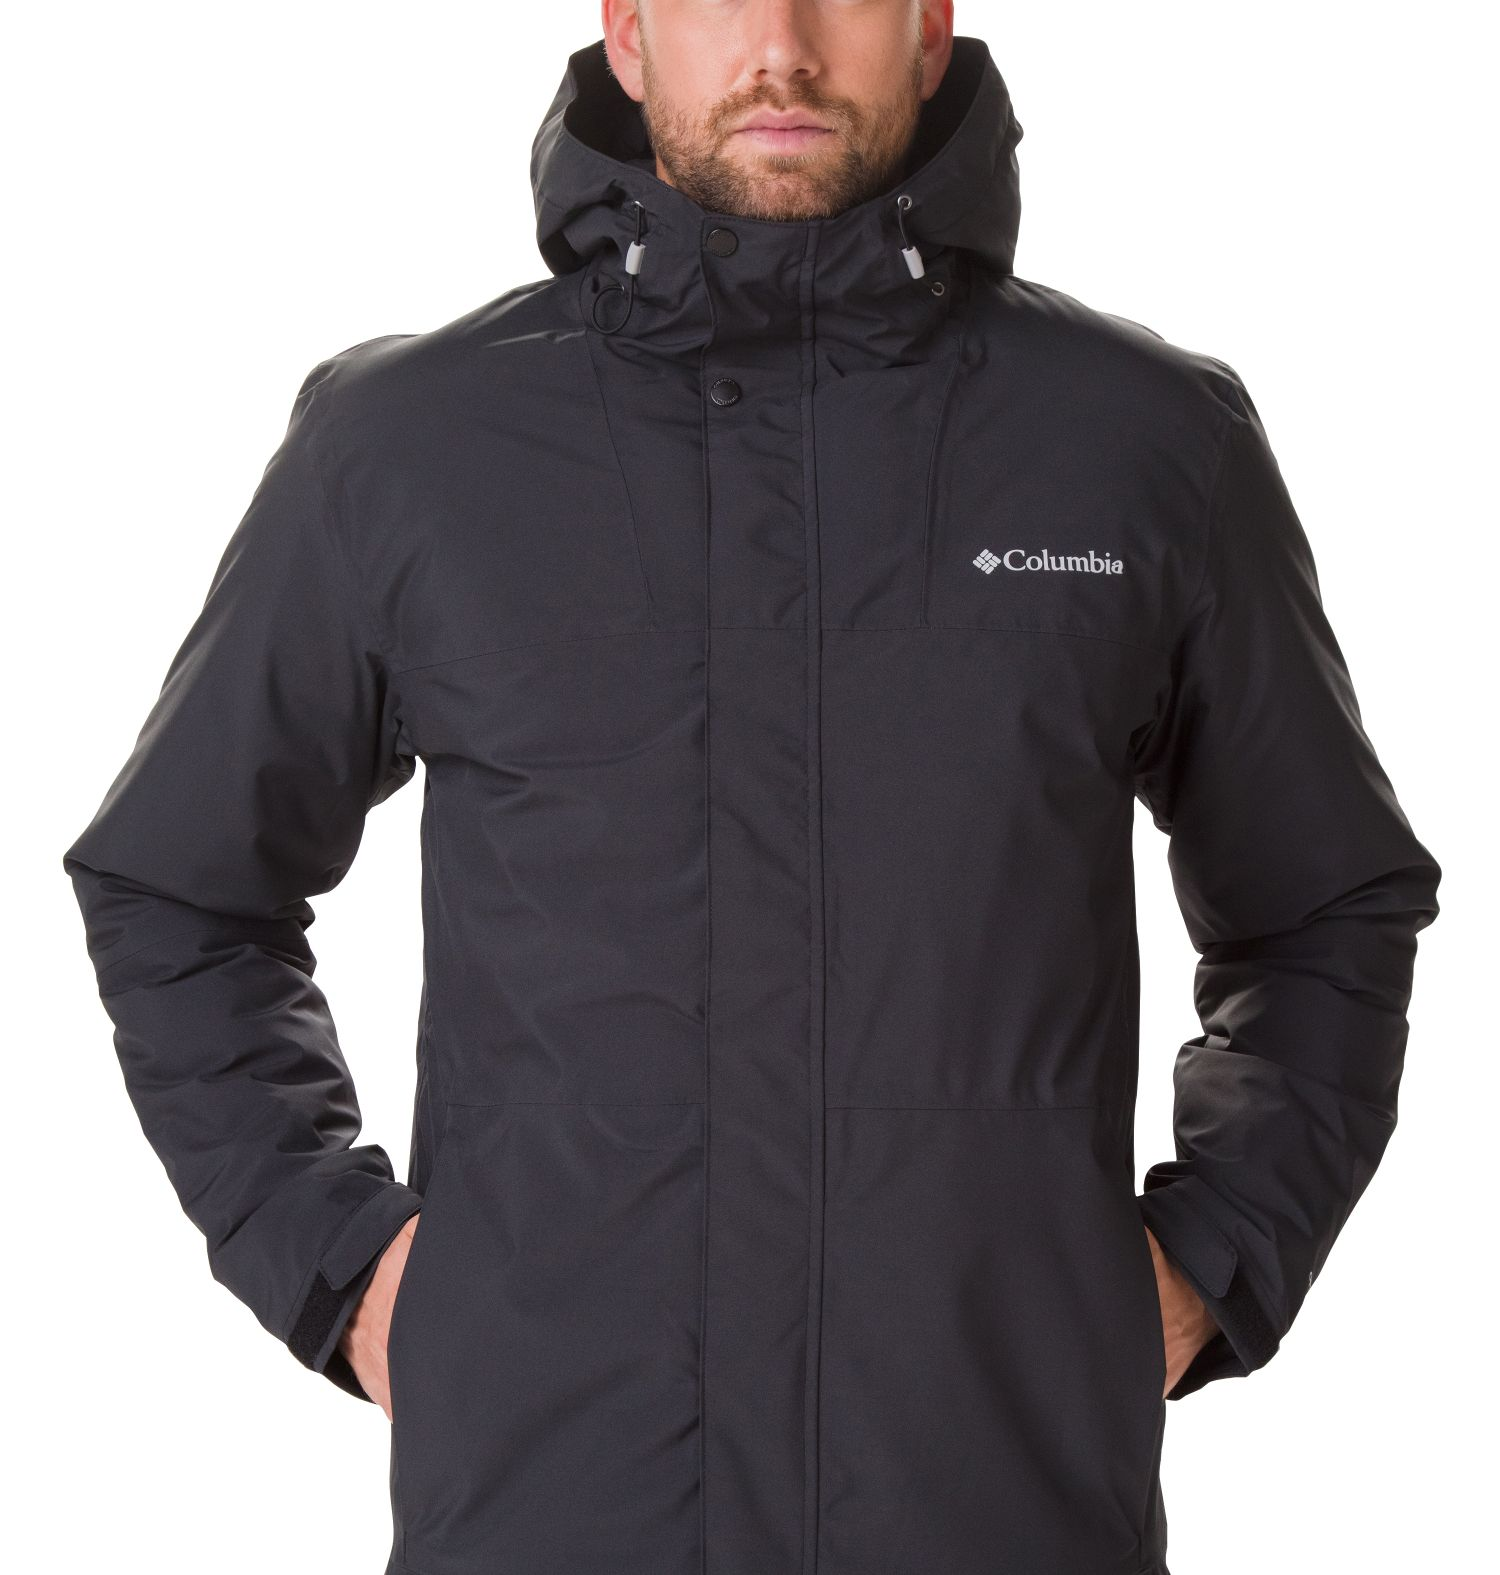 CHAQUETON CAPUCHA HORIZON EXPLORER THERMARATOR 100% POLYESTER Omni-TECH WATERPROOF BREATHABLE Omni-HEAT THERMAL REFLECTIVE BLACK